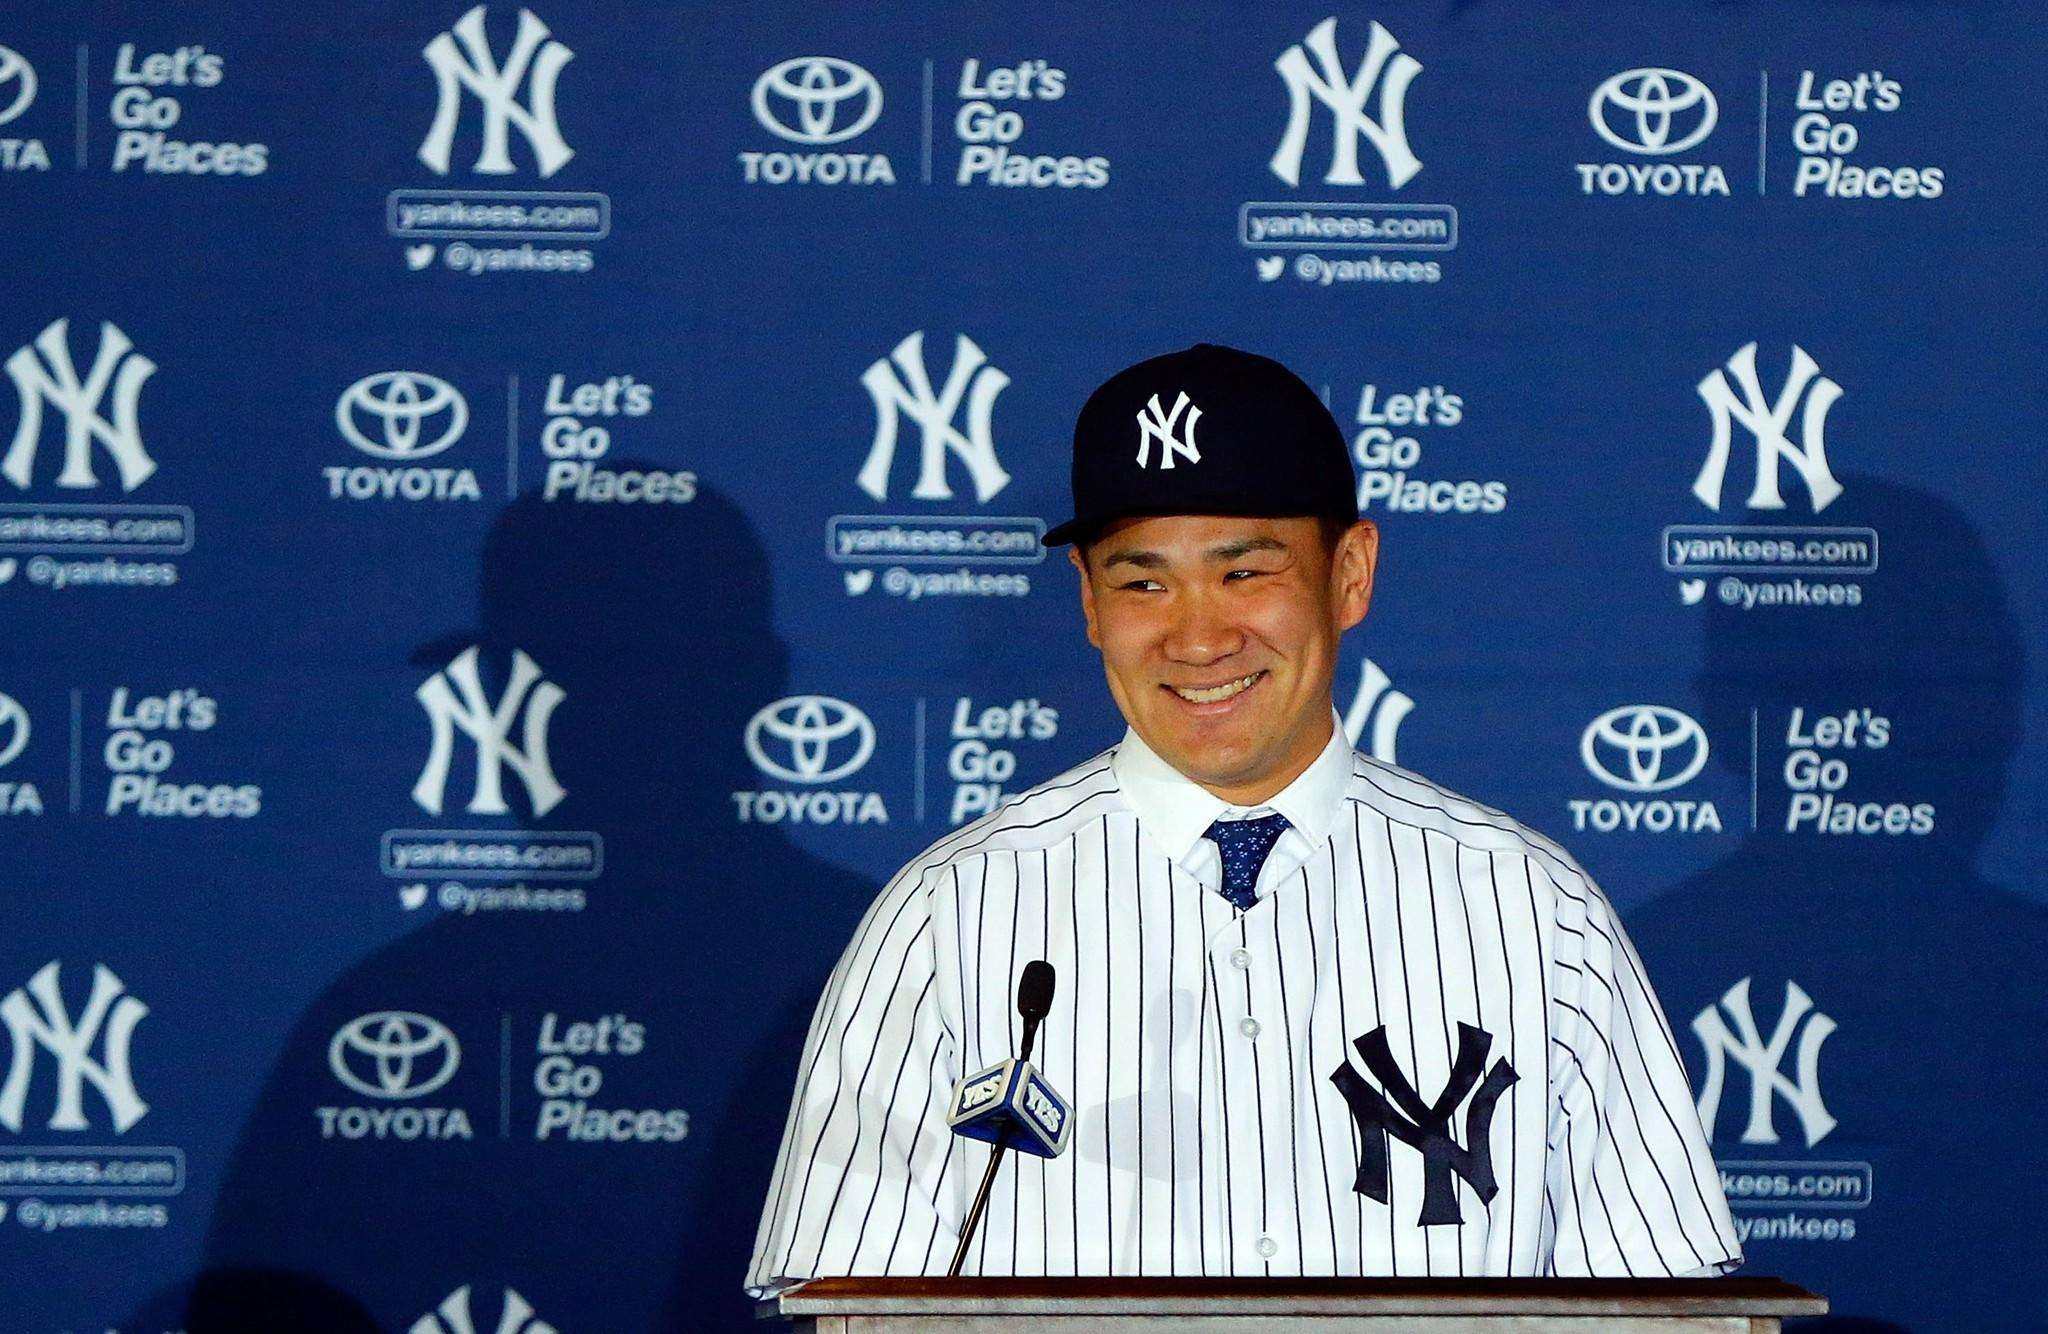 Masahiro Tanaka of the New York Yankees smiles as he is introduced to the media during a news conference.